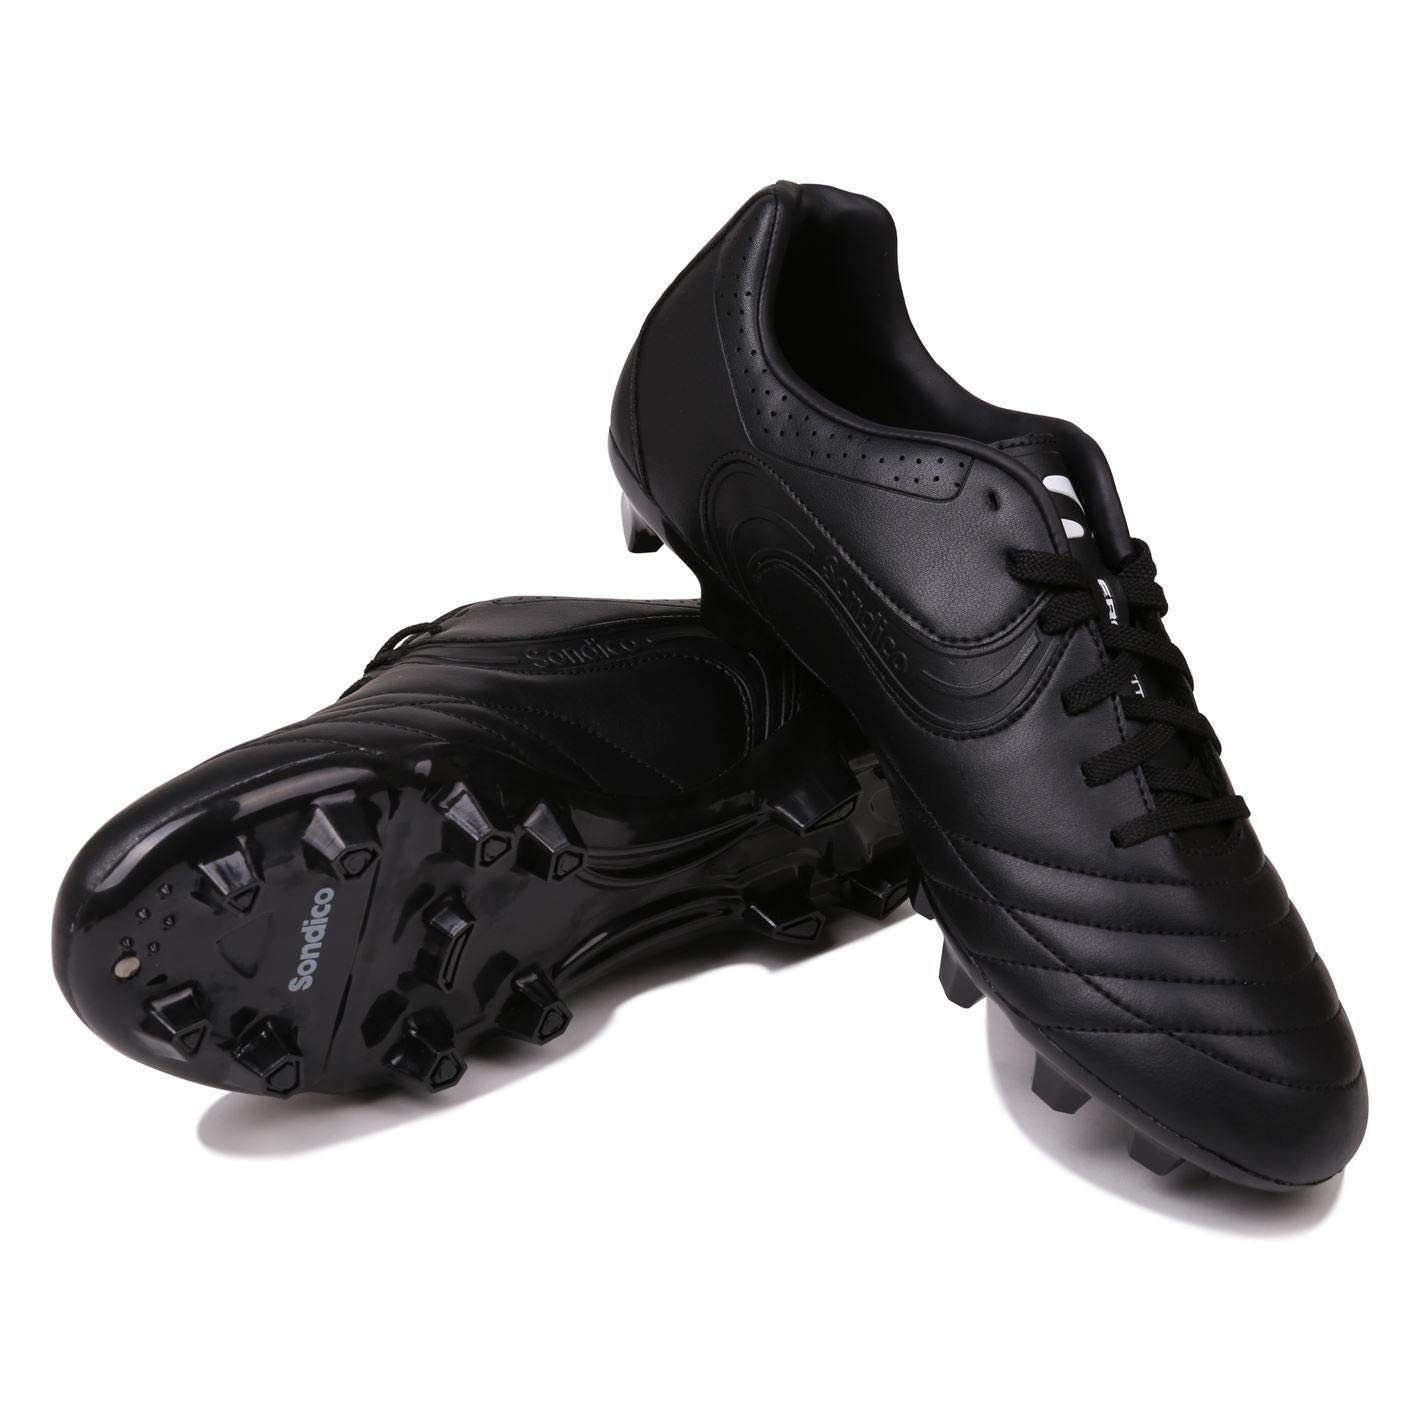 Official Sondico Strike II FG Firm Ground Football Boots Mens Black Soccer  Shoes Cleats  Amazon.co.uk  Shoes   Bags afd1cf6eb2e